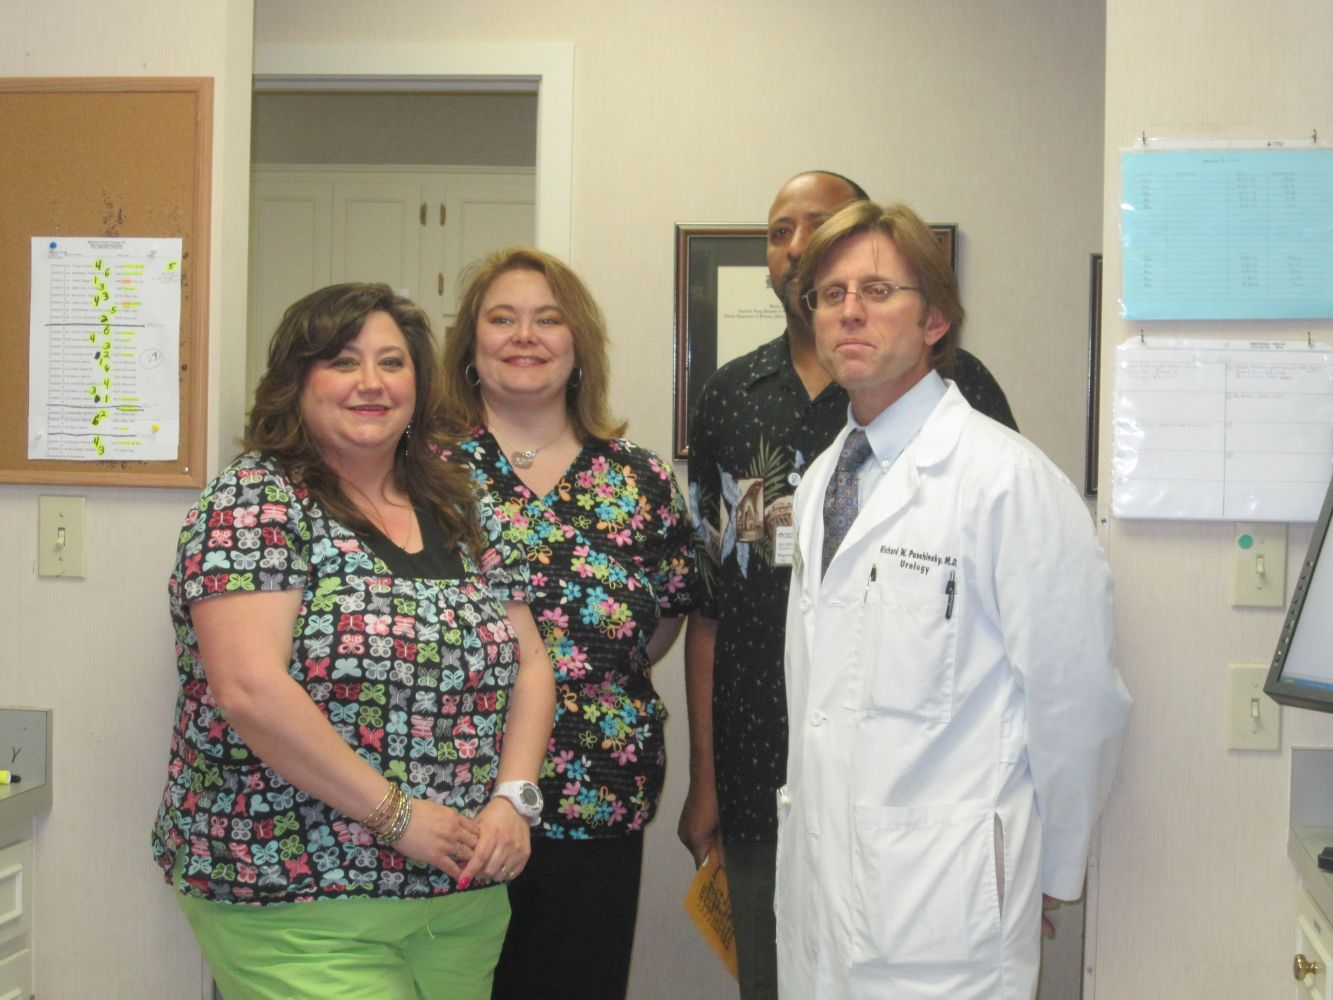 posing with the urological practice team in High Point, NC